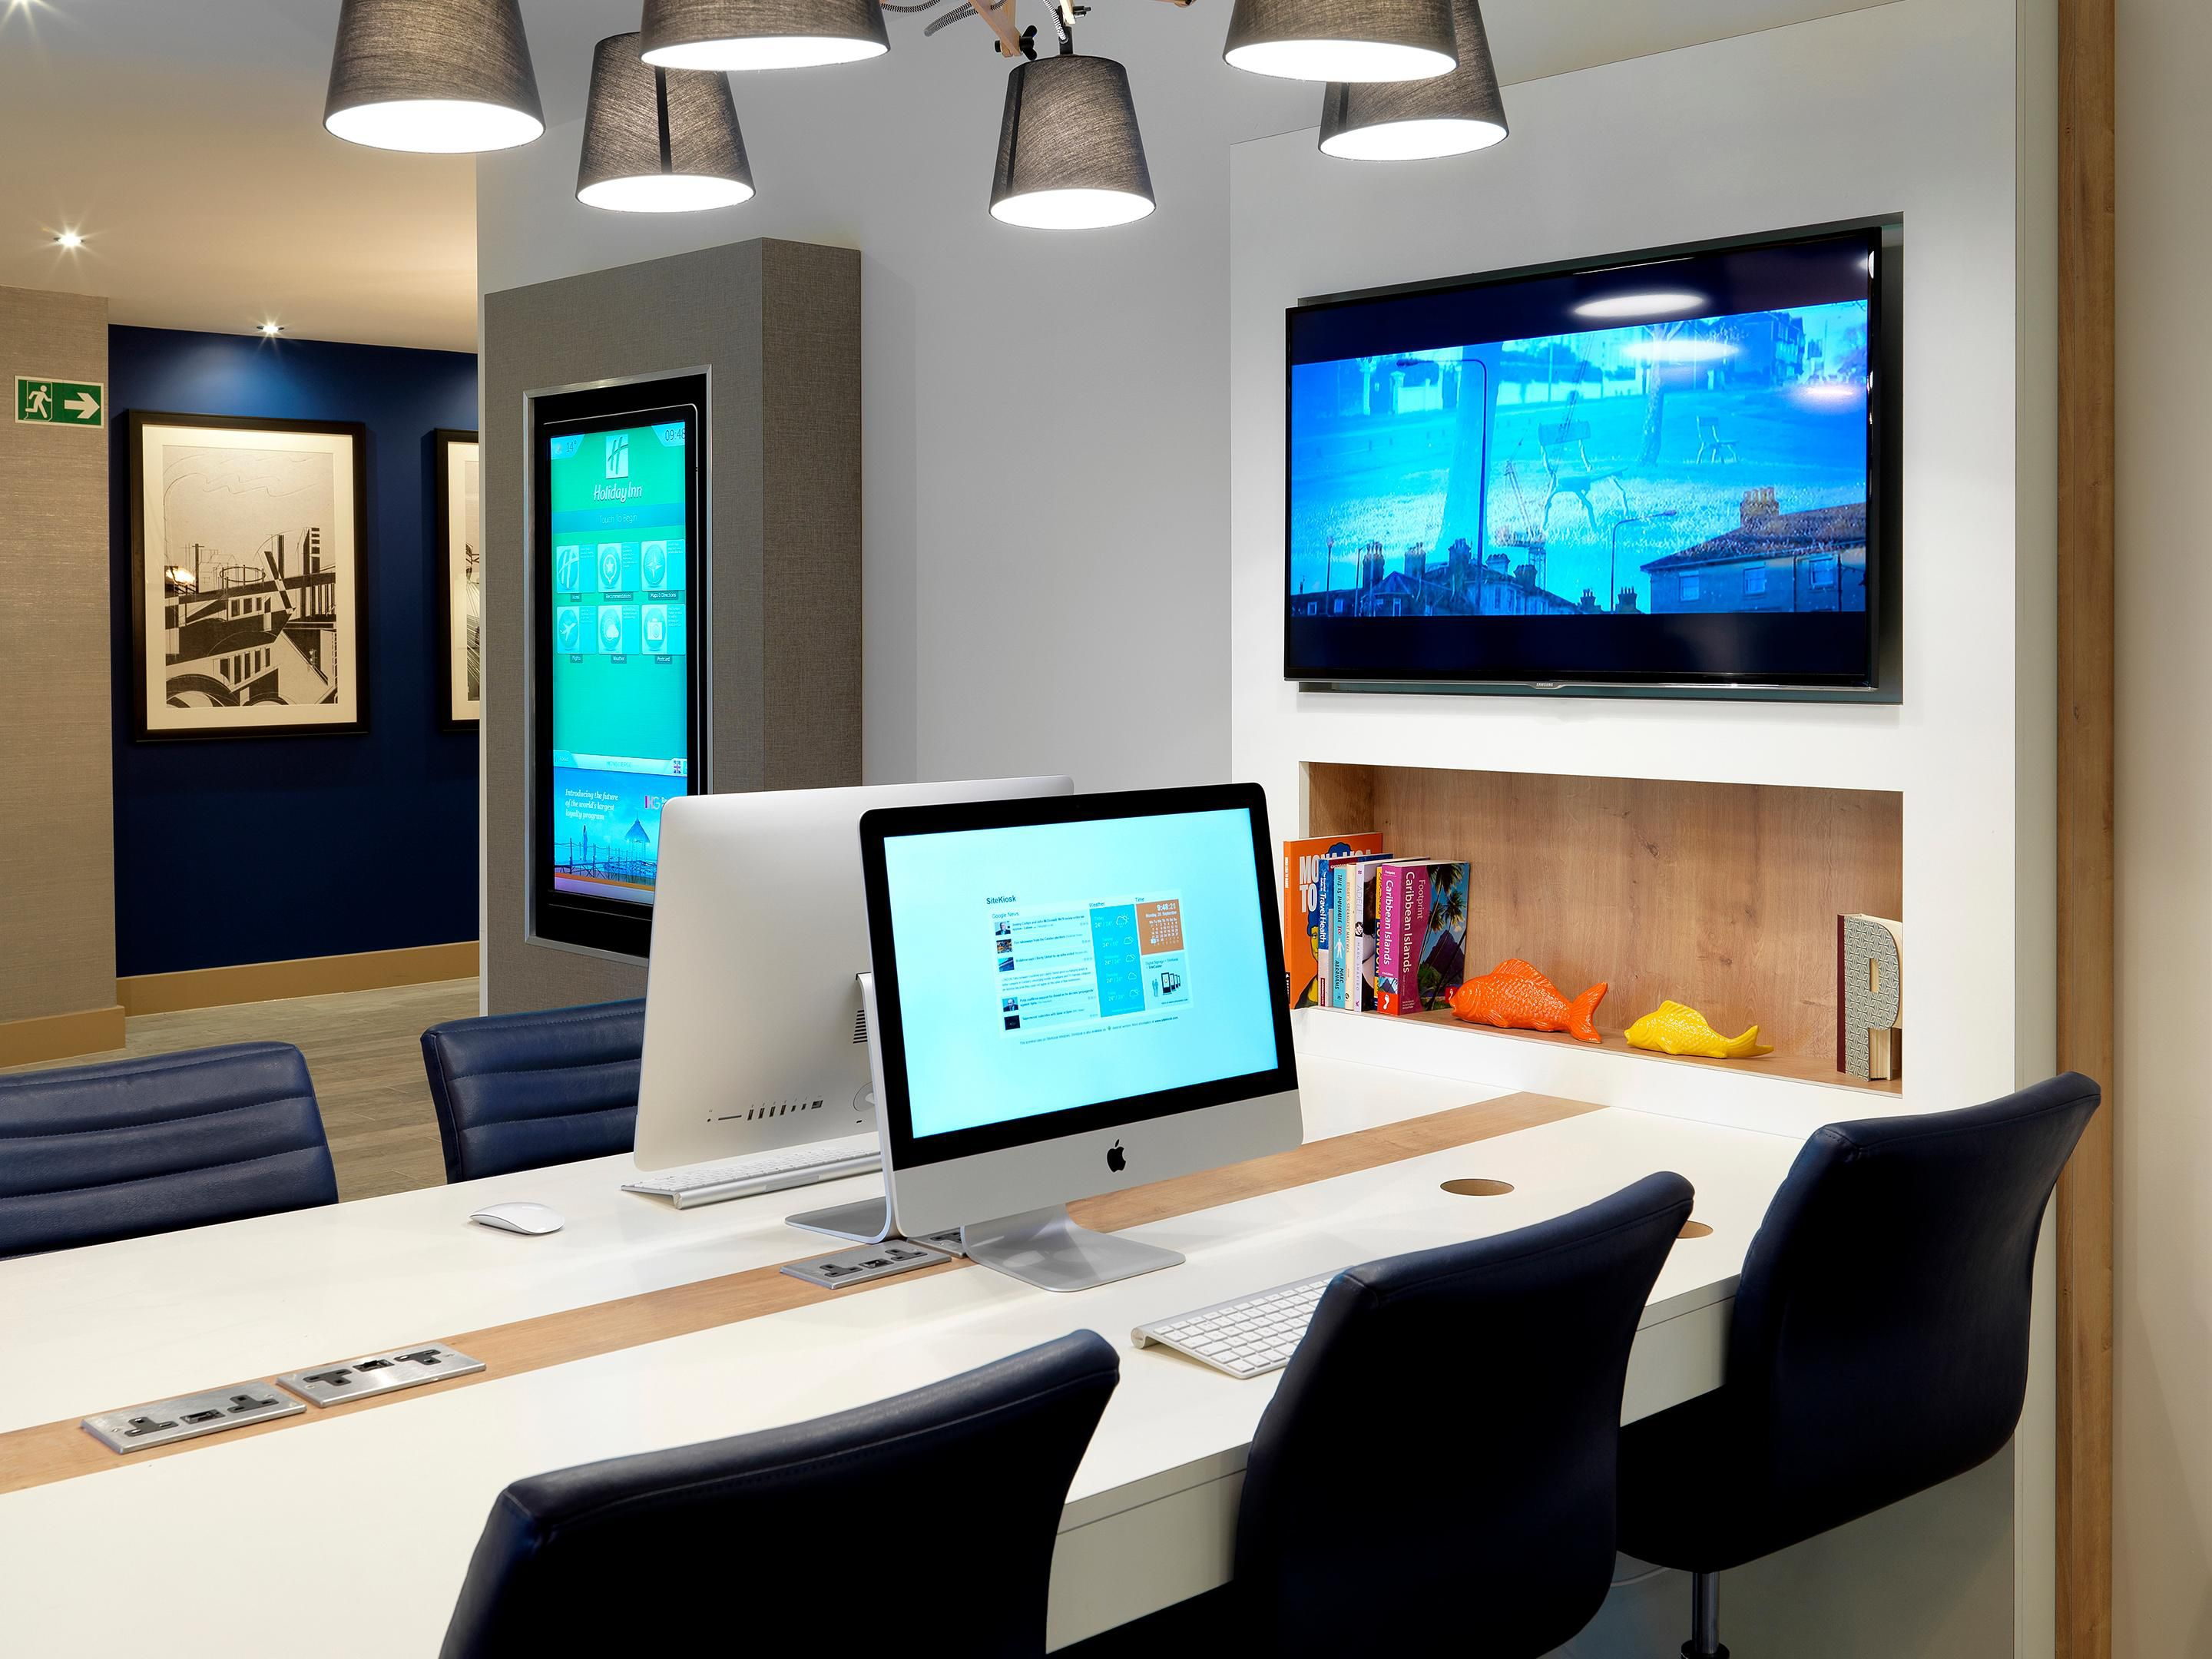 Make use of our media desk with iMacs and free wi-fi